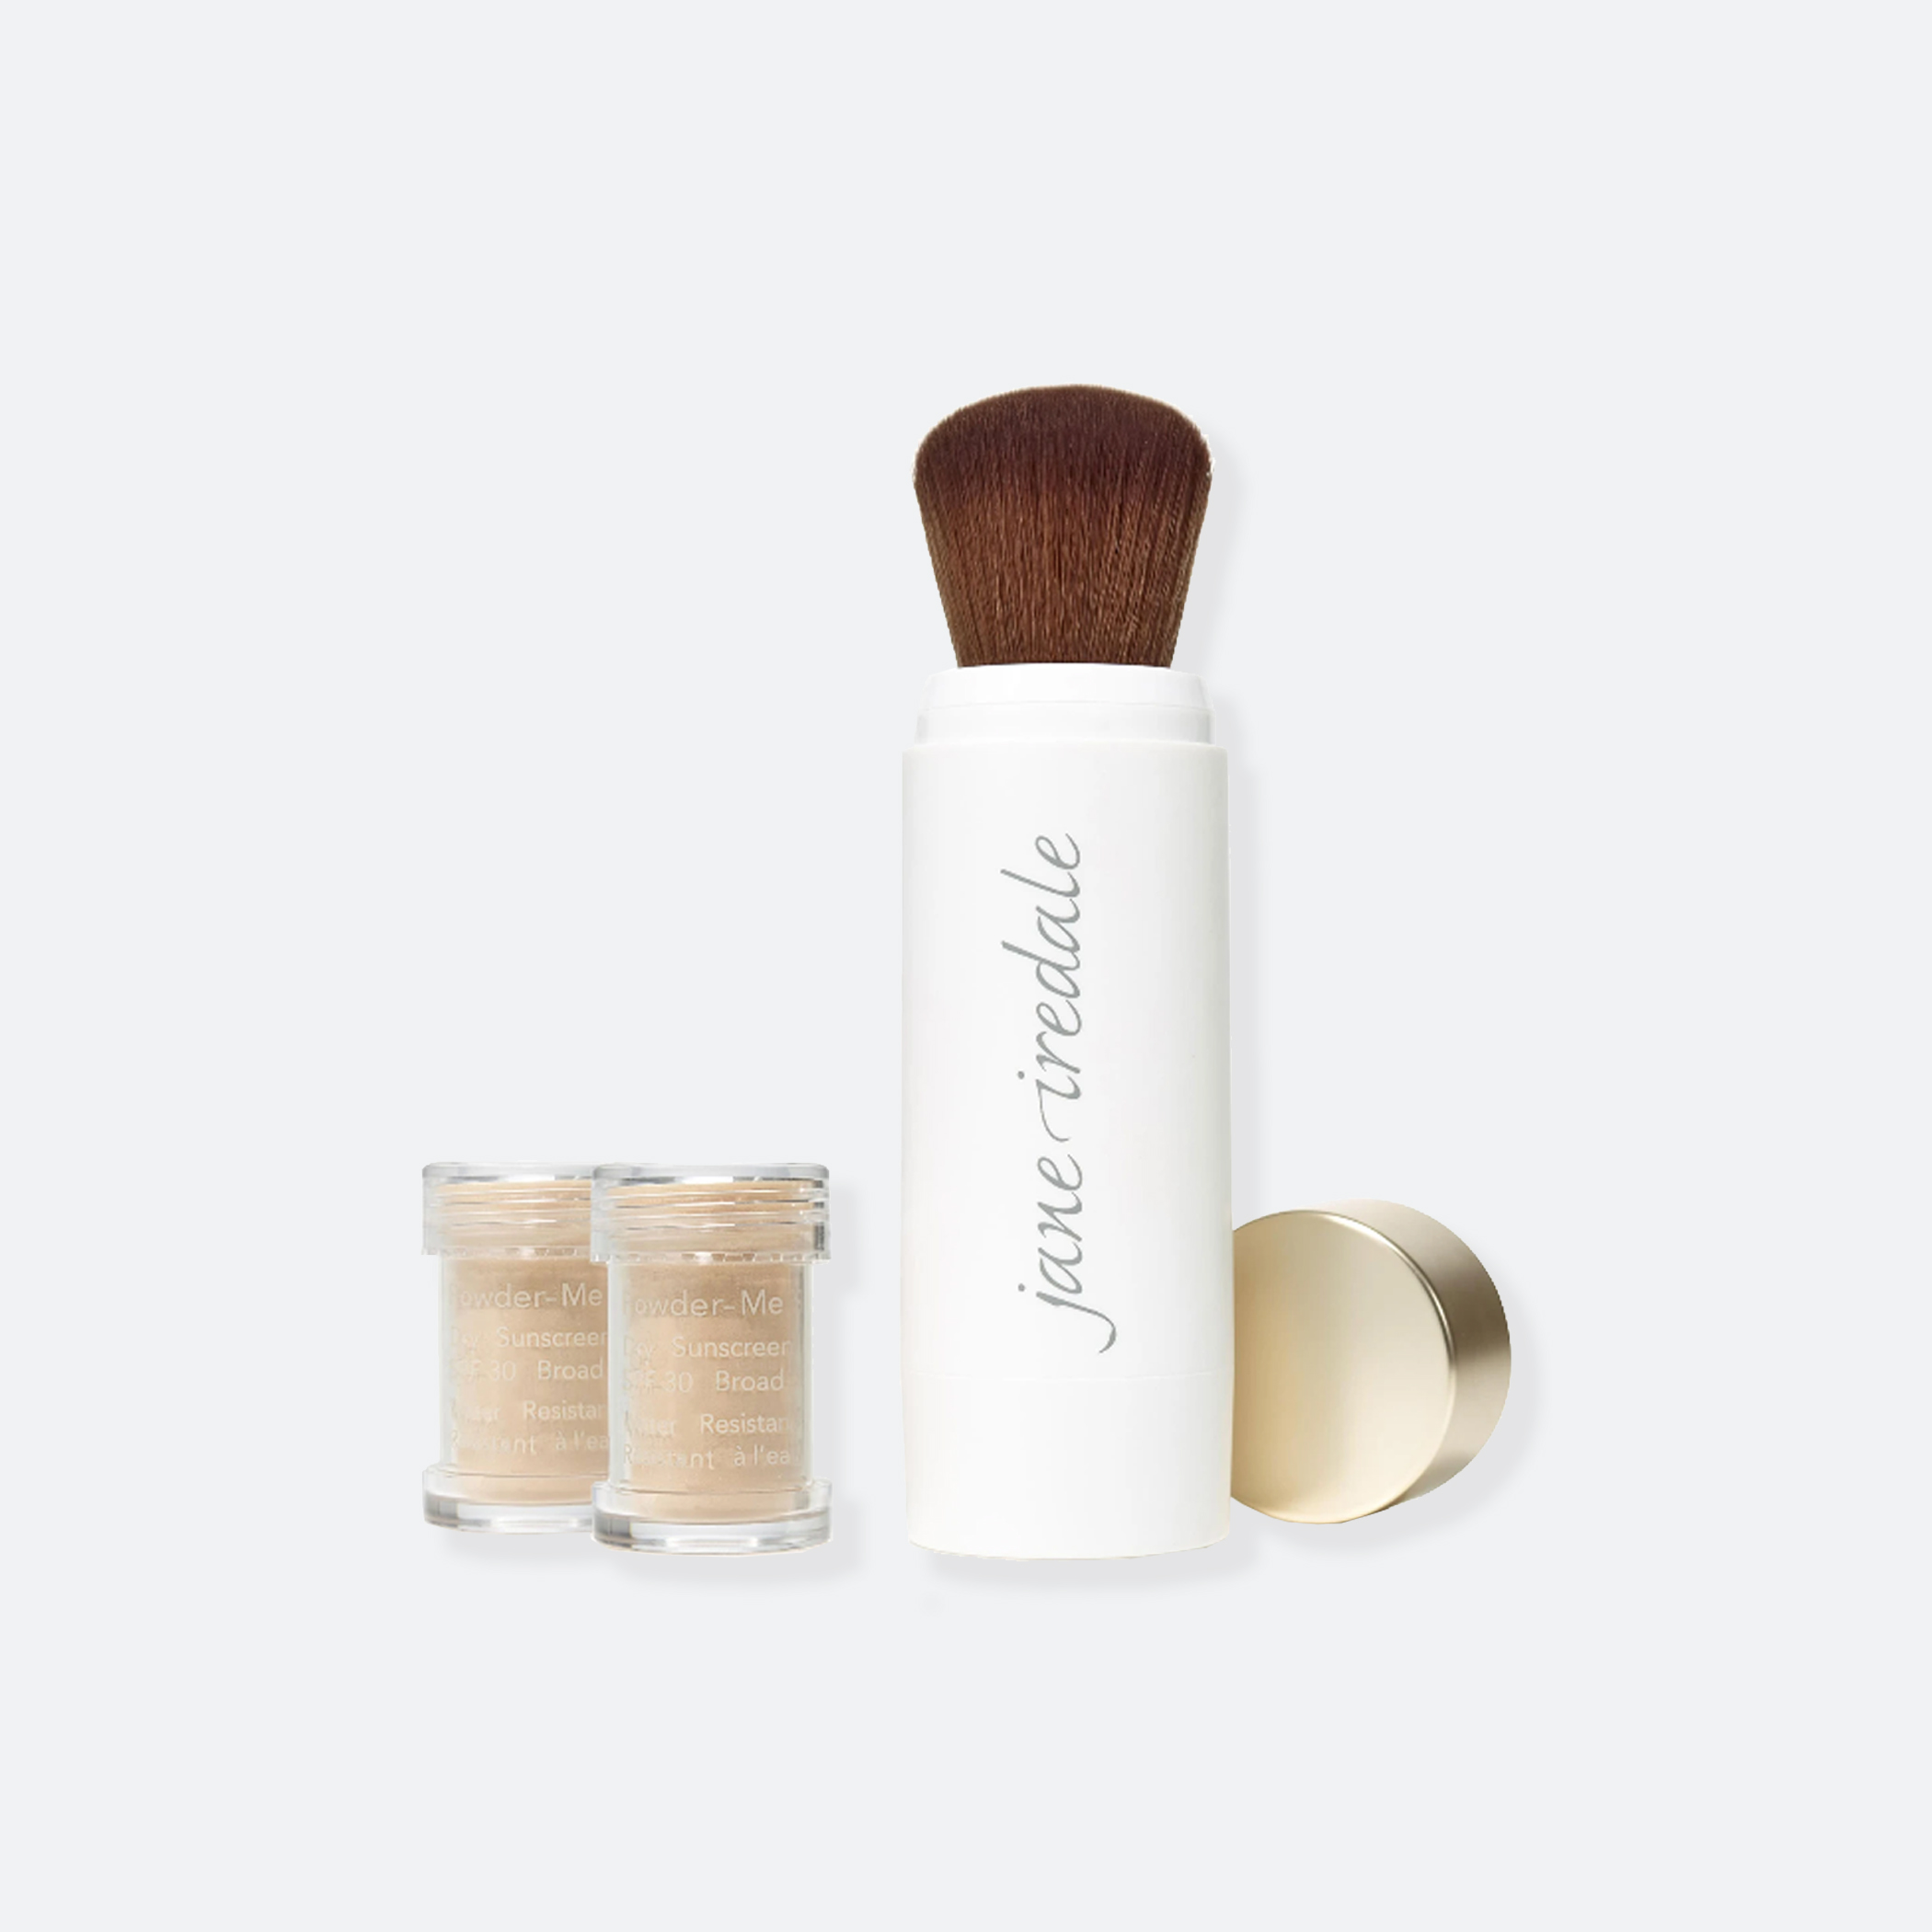 OhMart Beauty, Fashion, Lifestyle, Organic Skincare, Natural Makeup - Curated by OhMart 14